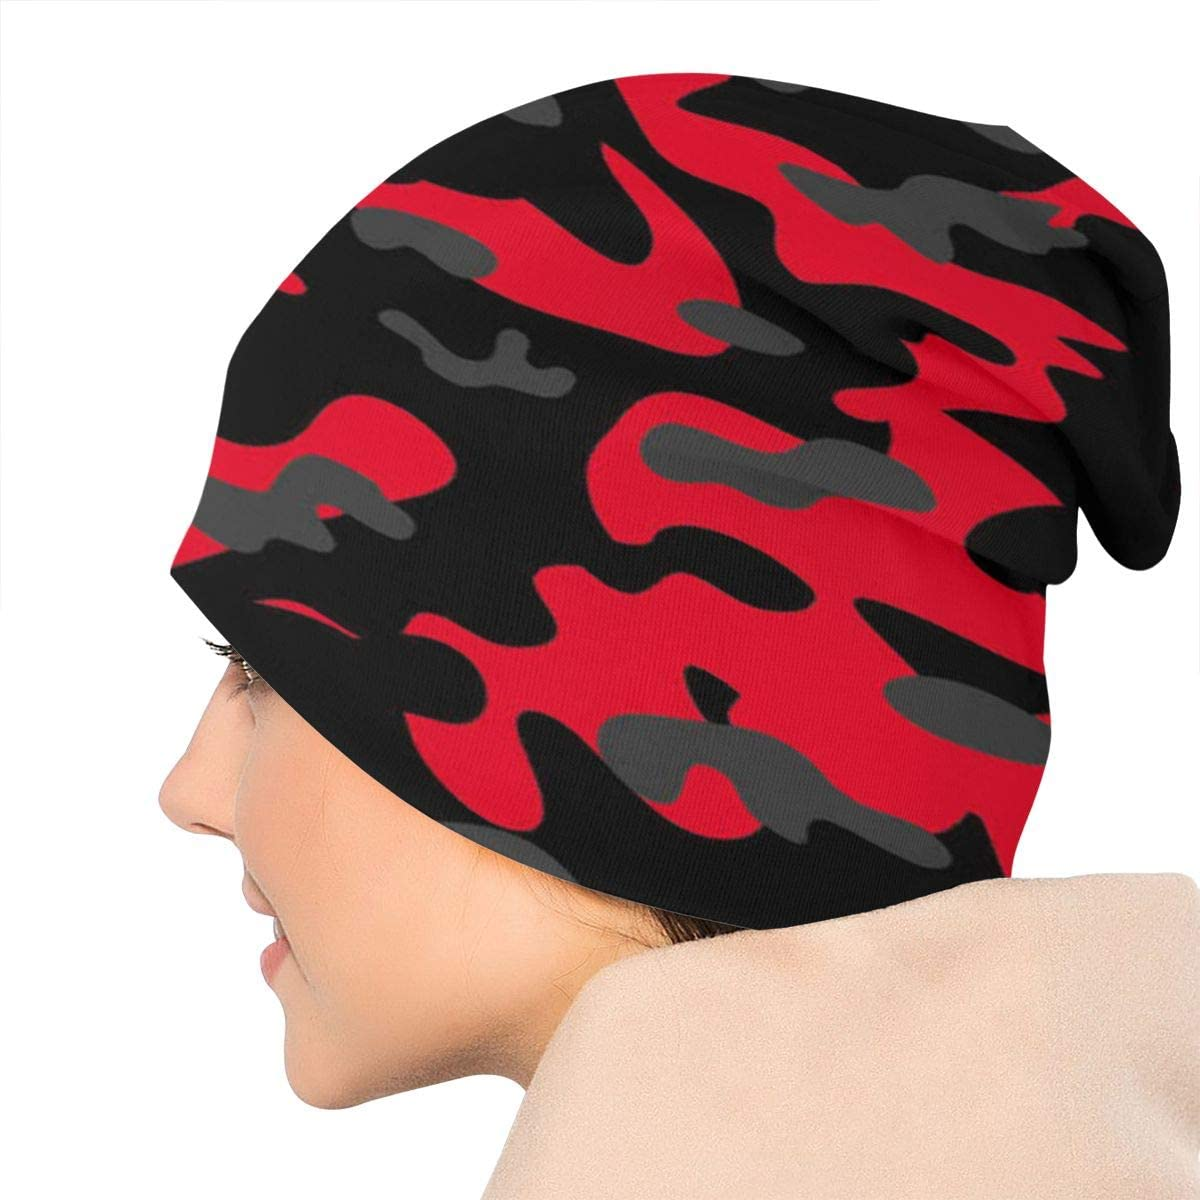 Tiger Red Camo Unisex Warm Hat Knit Hat Skull Cap Beanies Cap